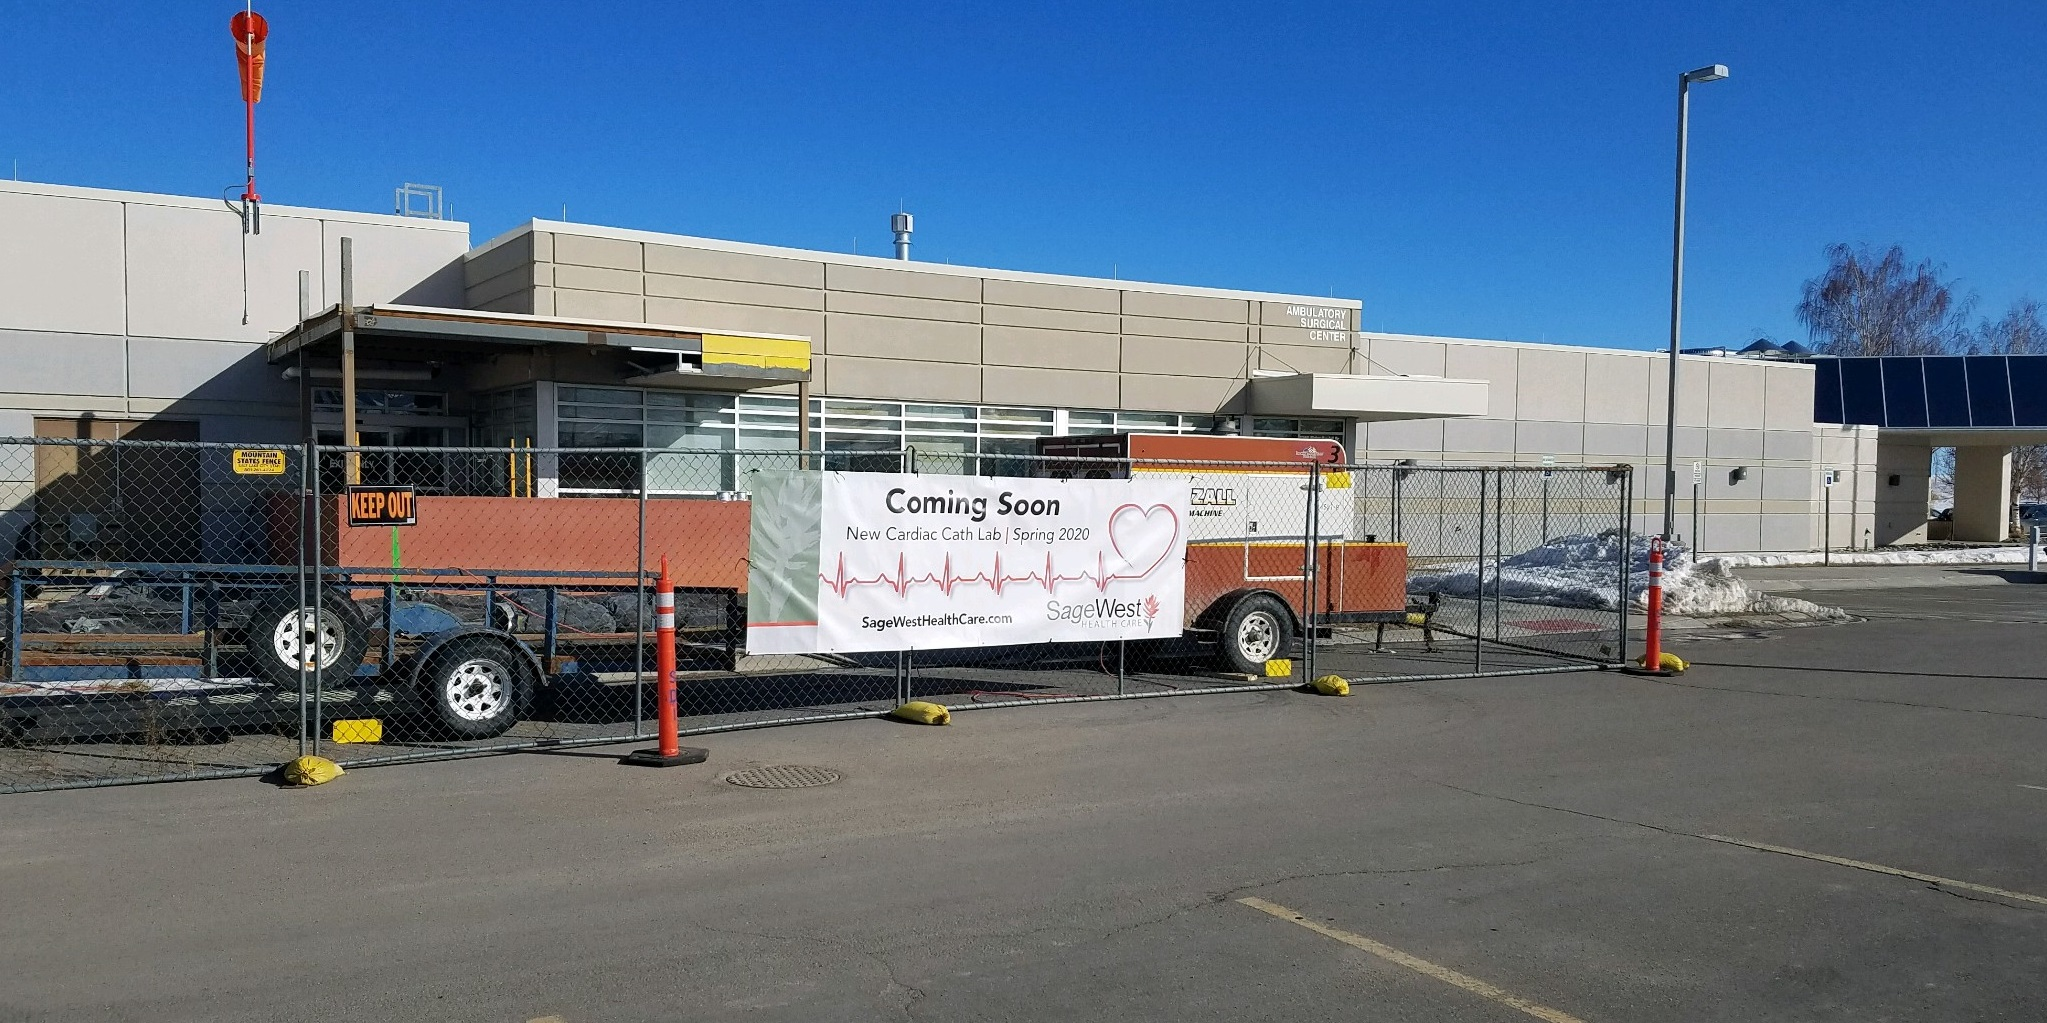 New Cardiac Catheterization Lab begins construction at SageWest Health Care